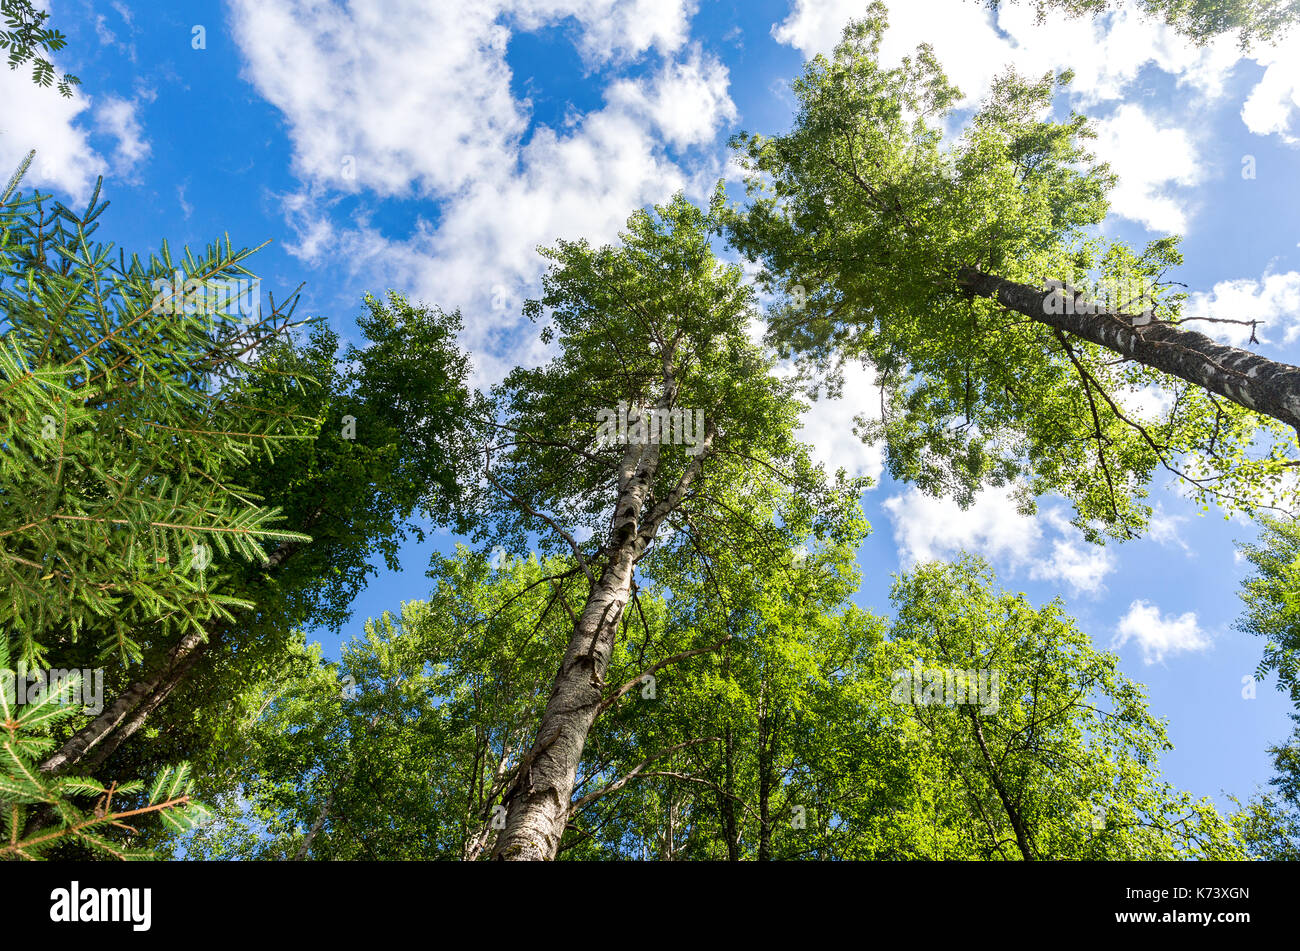 Crowns of tall birch trees above his head in the forest against a blue sky. Wild nature of the forests. Deciduous forest in summertime - Stock Image